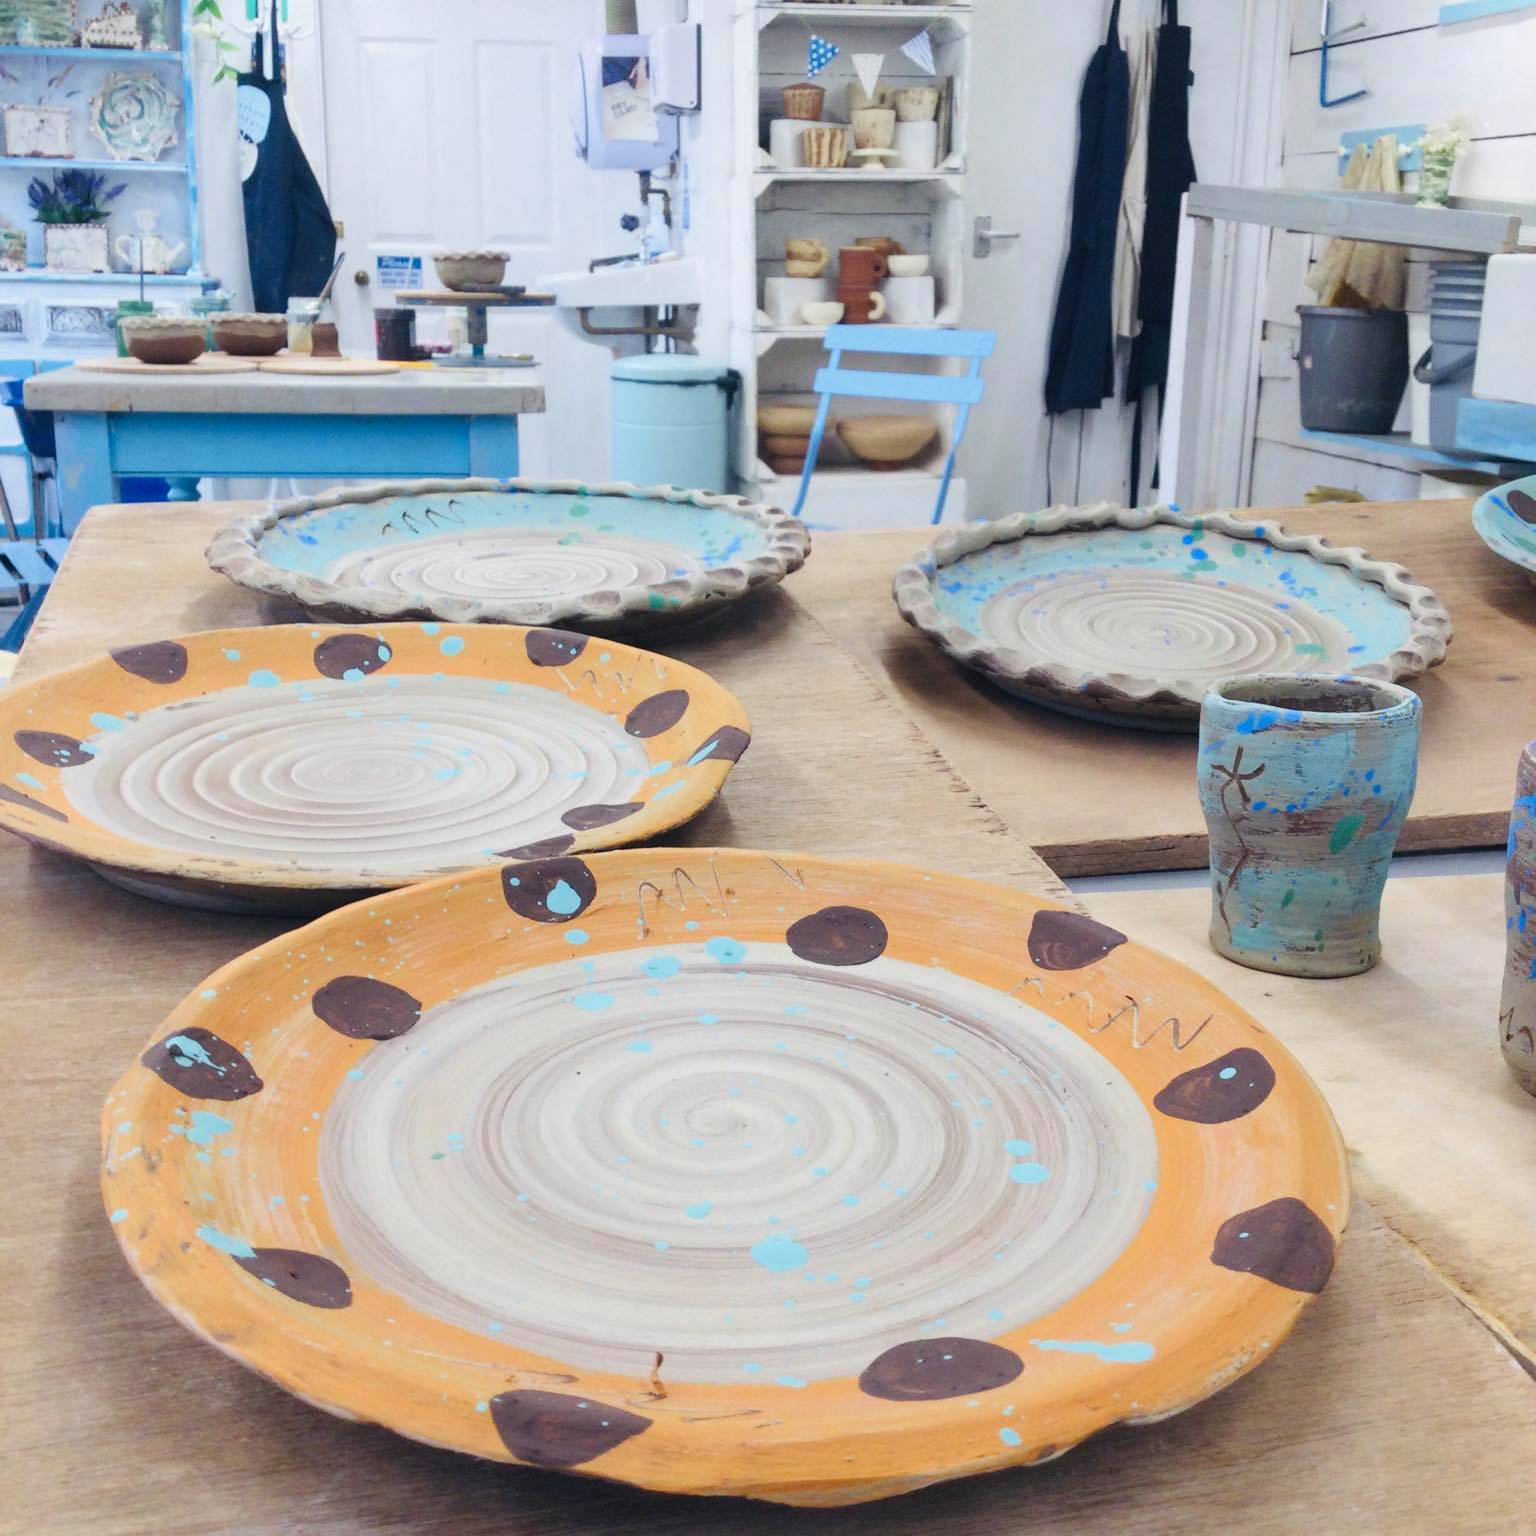 work in progress studio shot of slipware bt Sarah Monk Ceramics